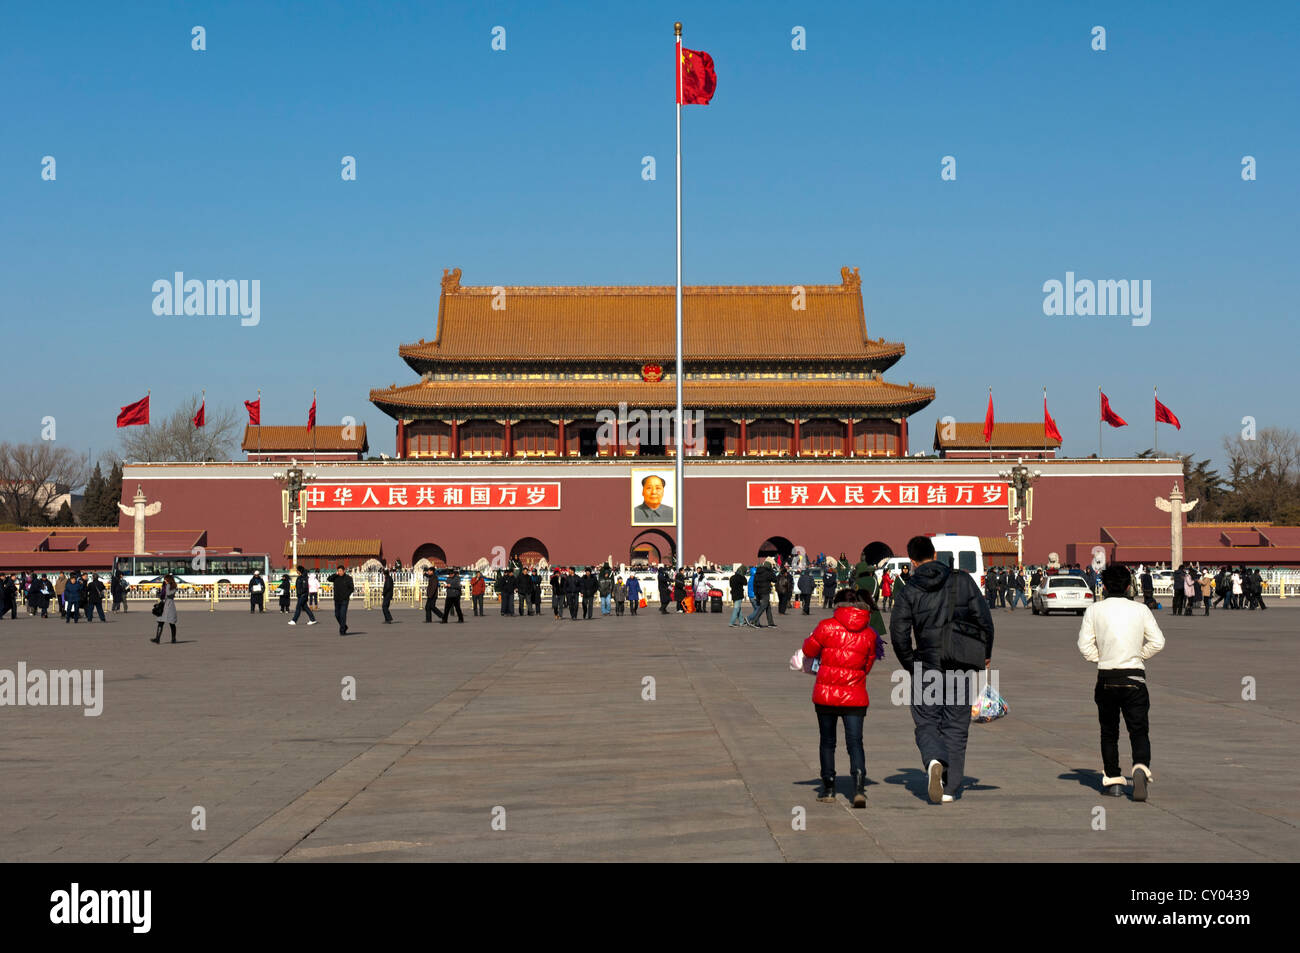 Tiananmen Square, view of the Tiananmen Gate at the entrance to the Forbidden City, Beijing, China, Asia - Stock Image